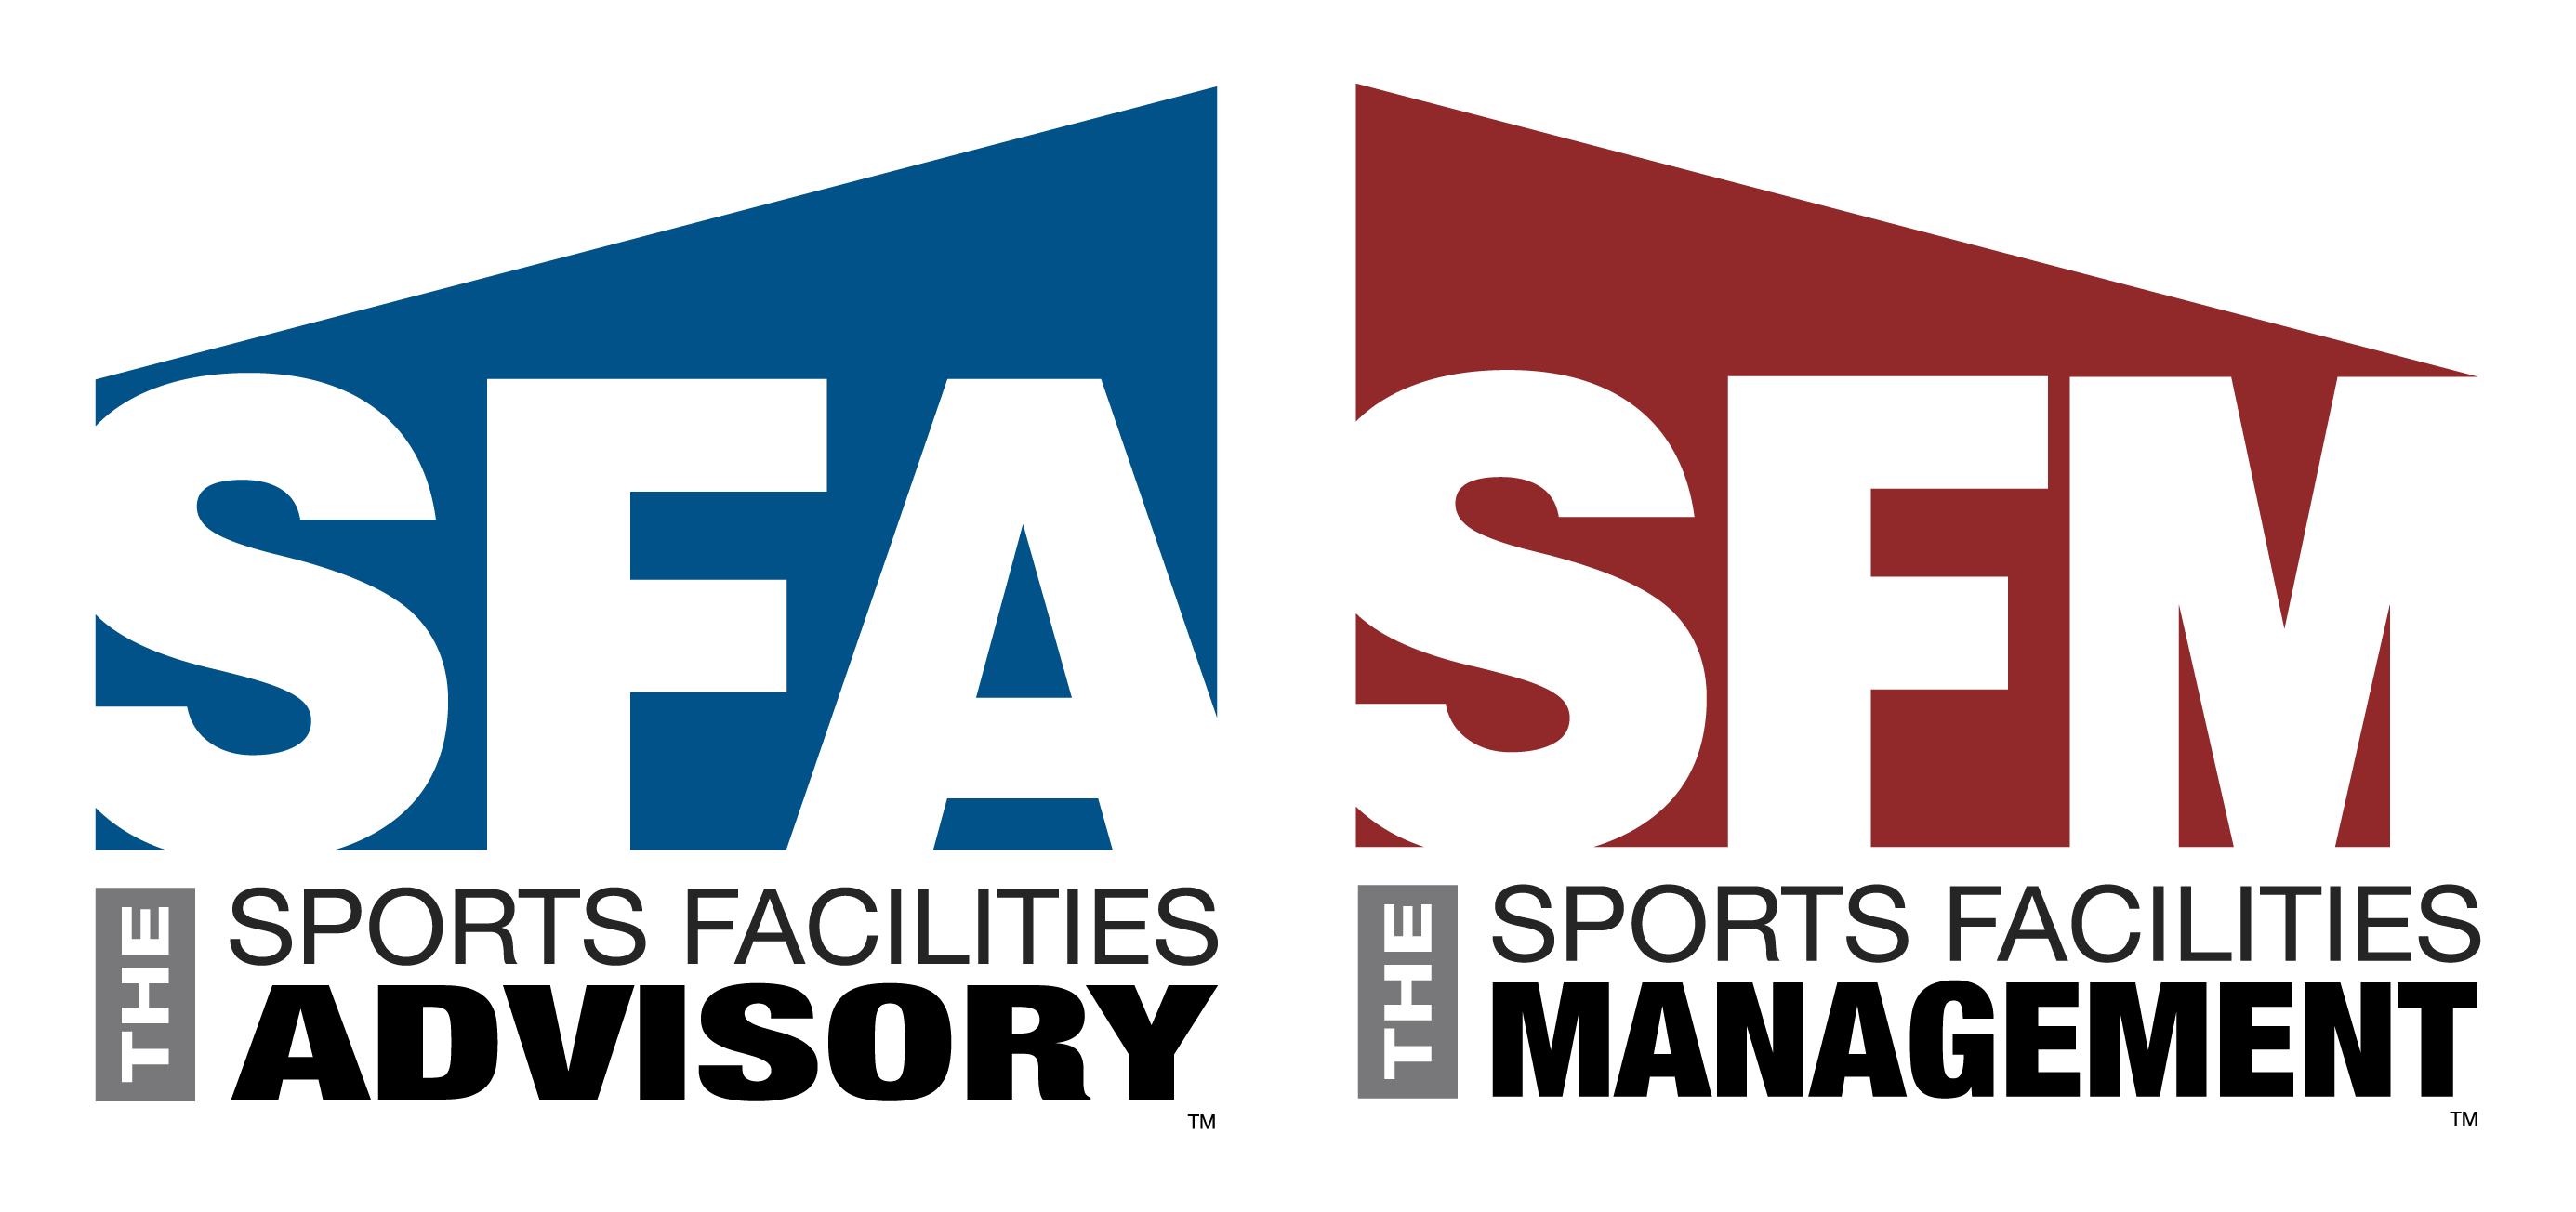 The Sports Facilities Advisory | The Sports Facilities Management